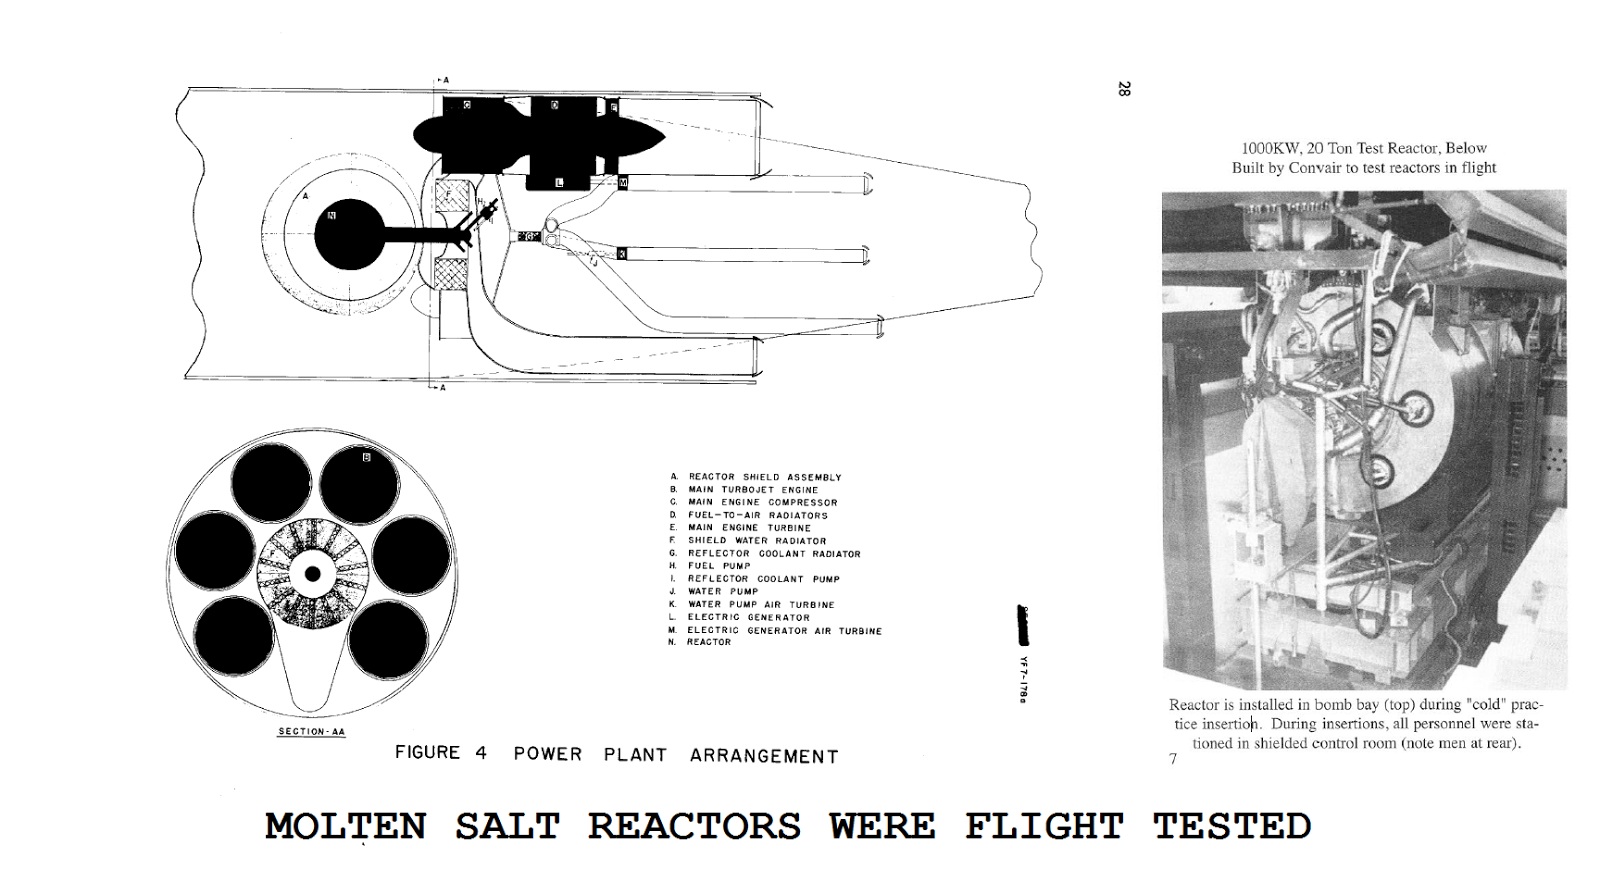 Area 51 Is The Home Of Americas Nuclear Aero Space Program Molten Salt Water Engine Diagram Posted By Holloway At 0111